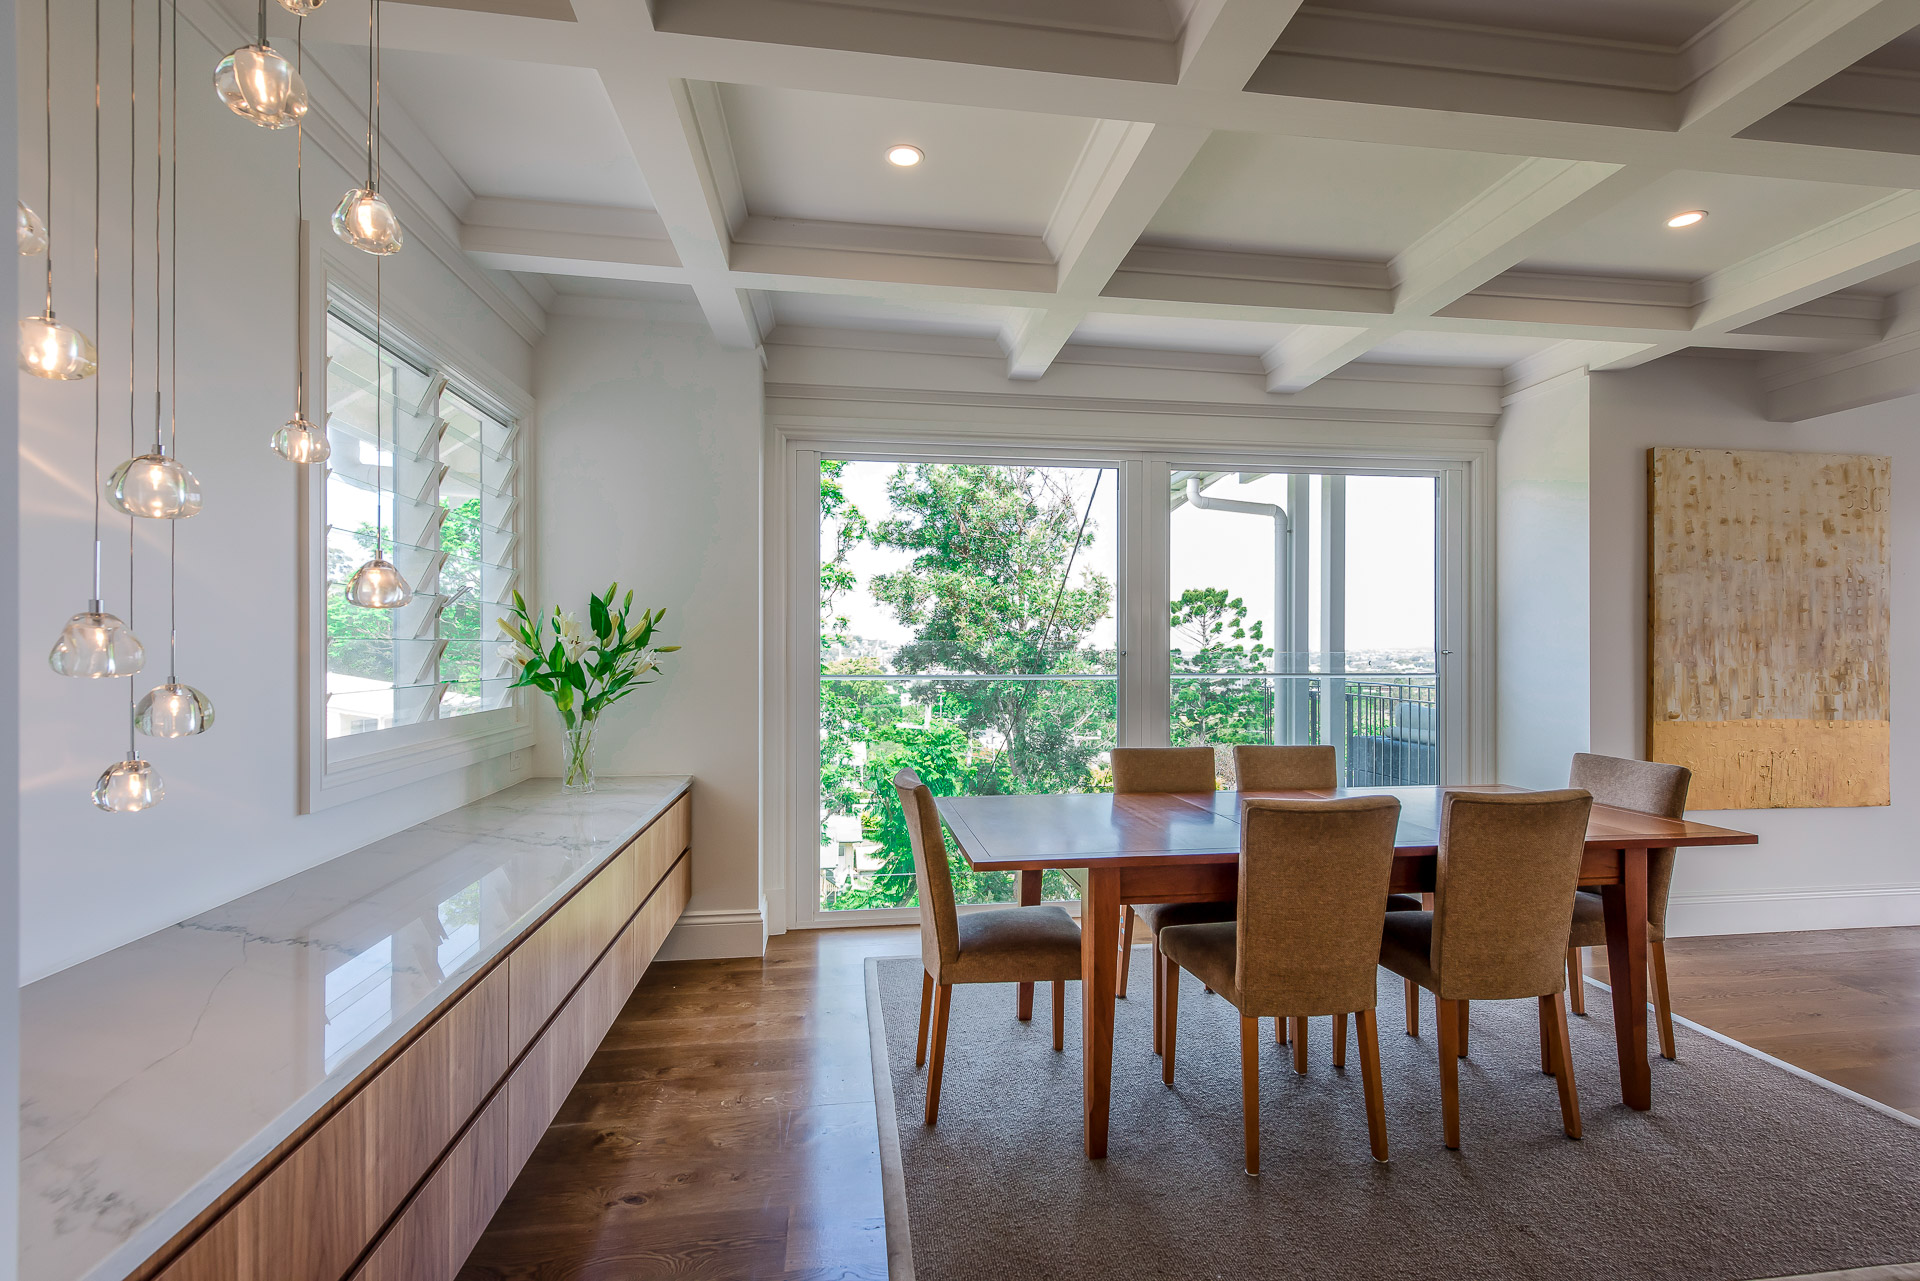 Luxury dining room, architecture, luxury interiors, minka joinery, Cowan Constructions, brisbane, queensland